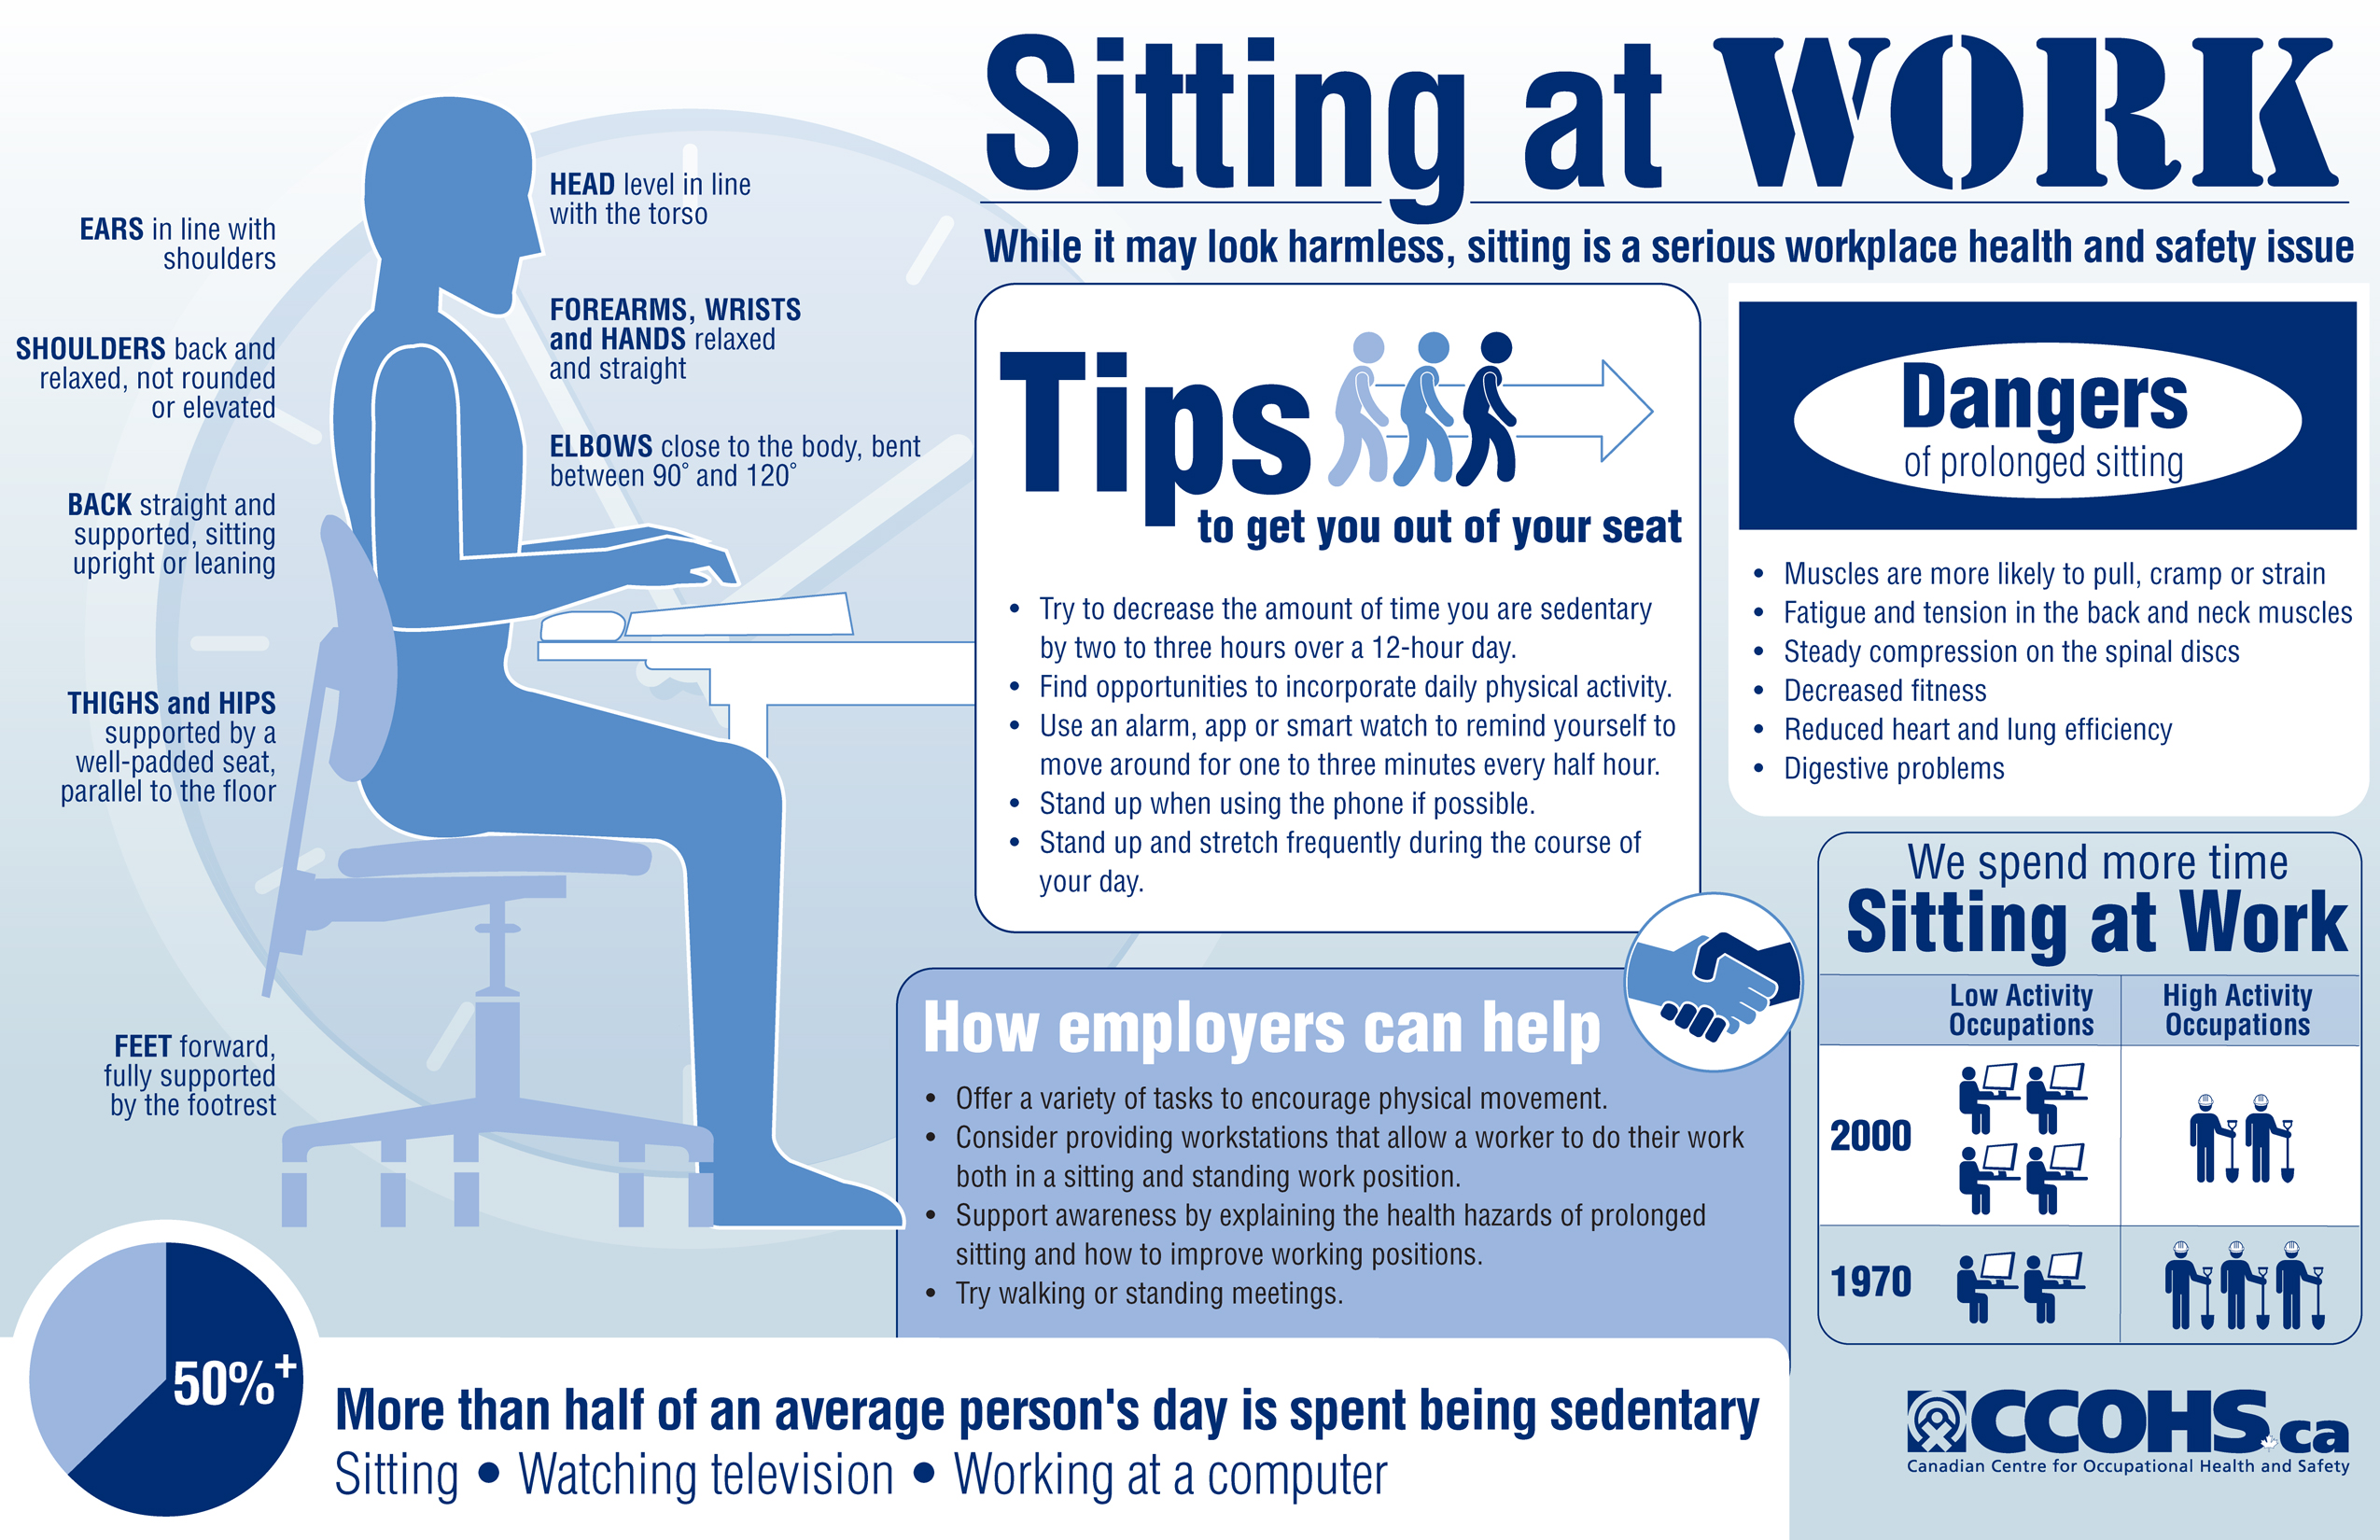 Sitting at Work Infographic